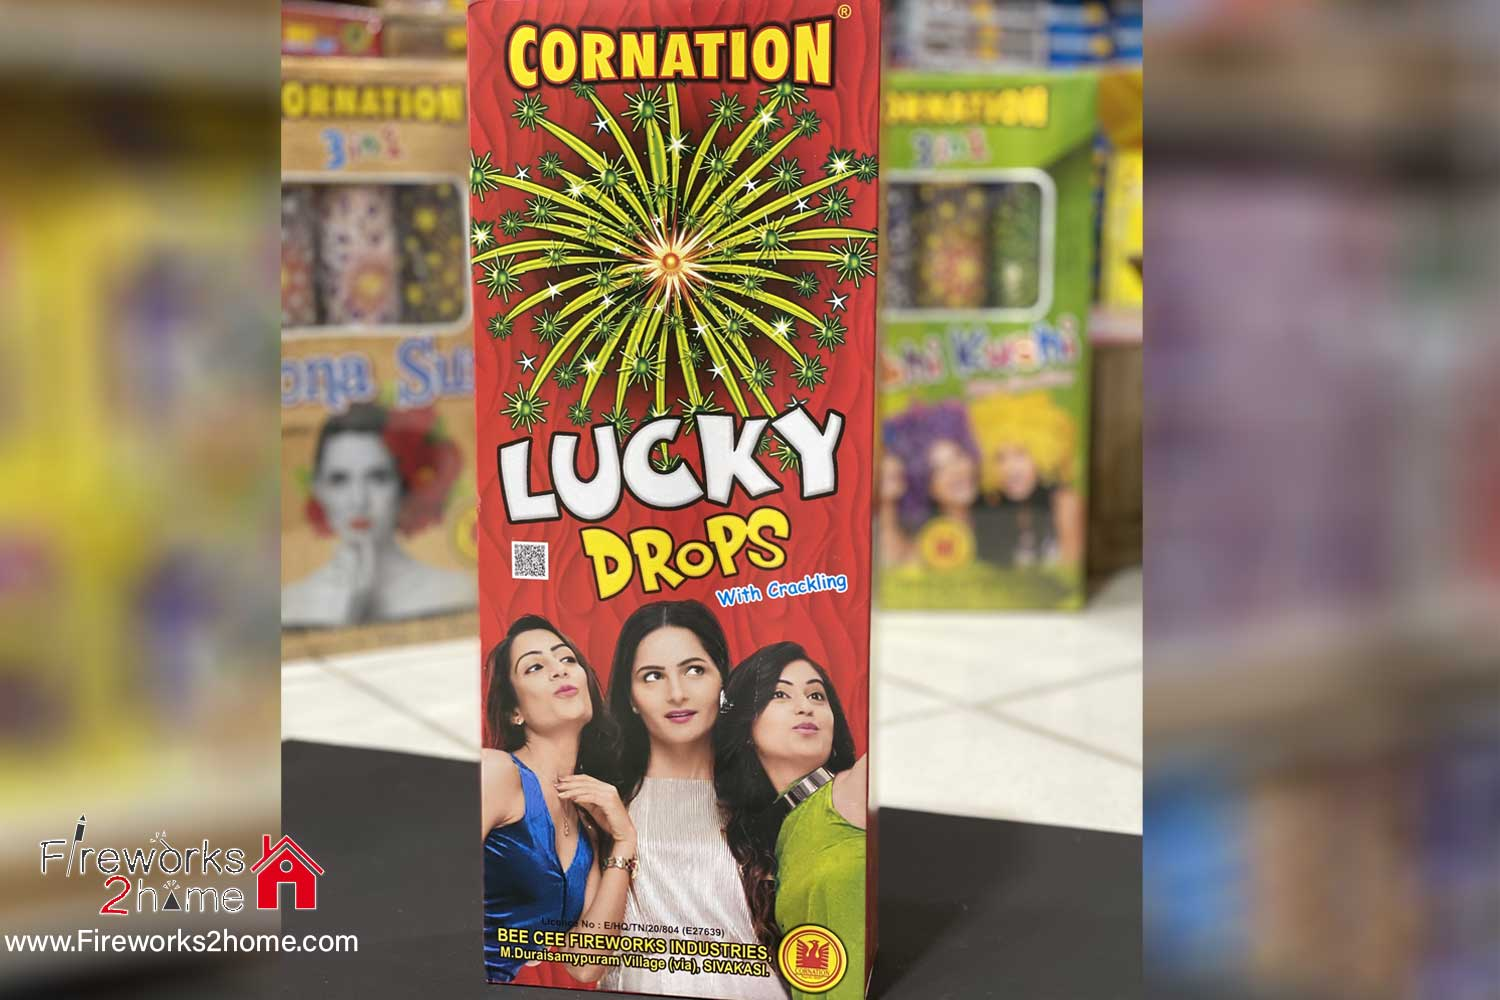 Lucky Drops with Crackling by Coronation